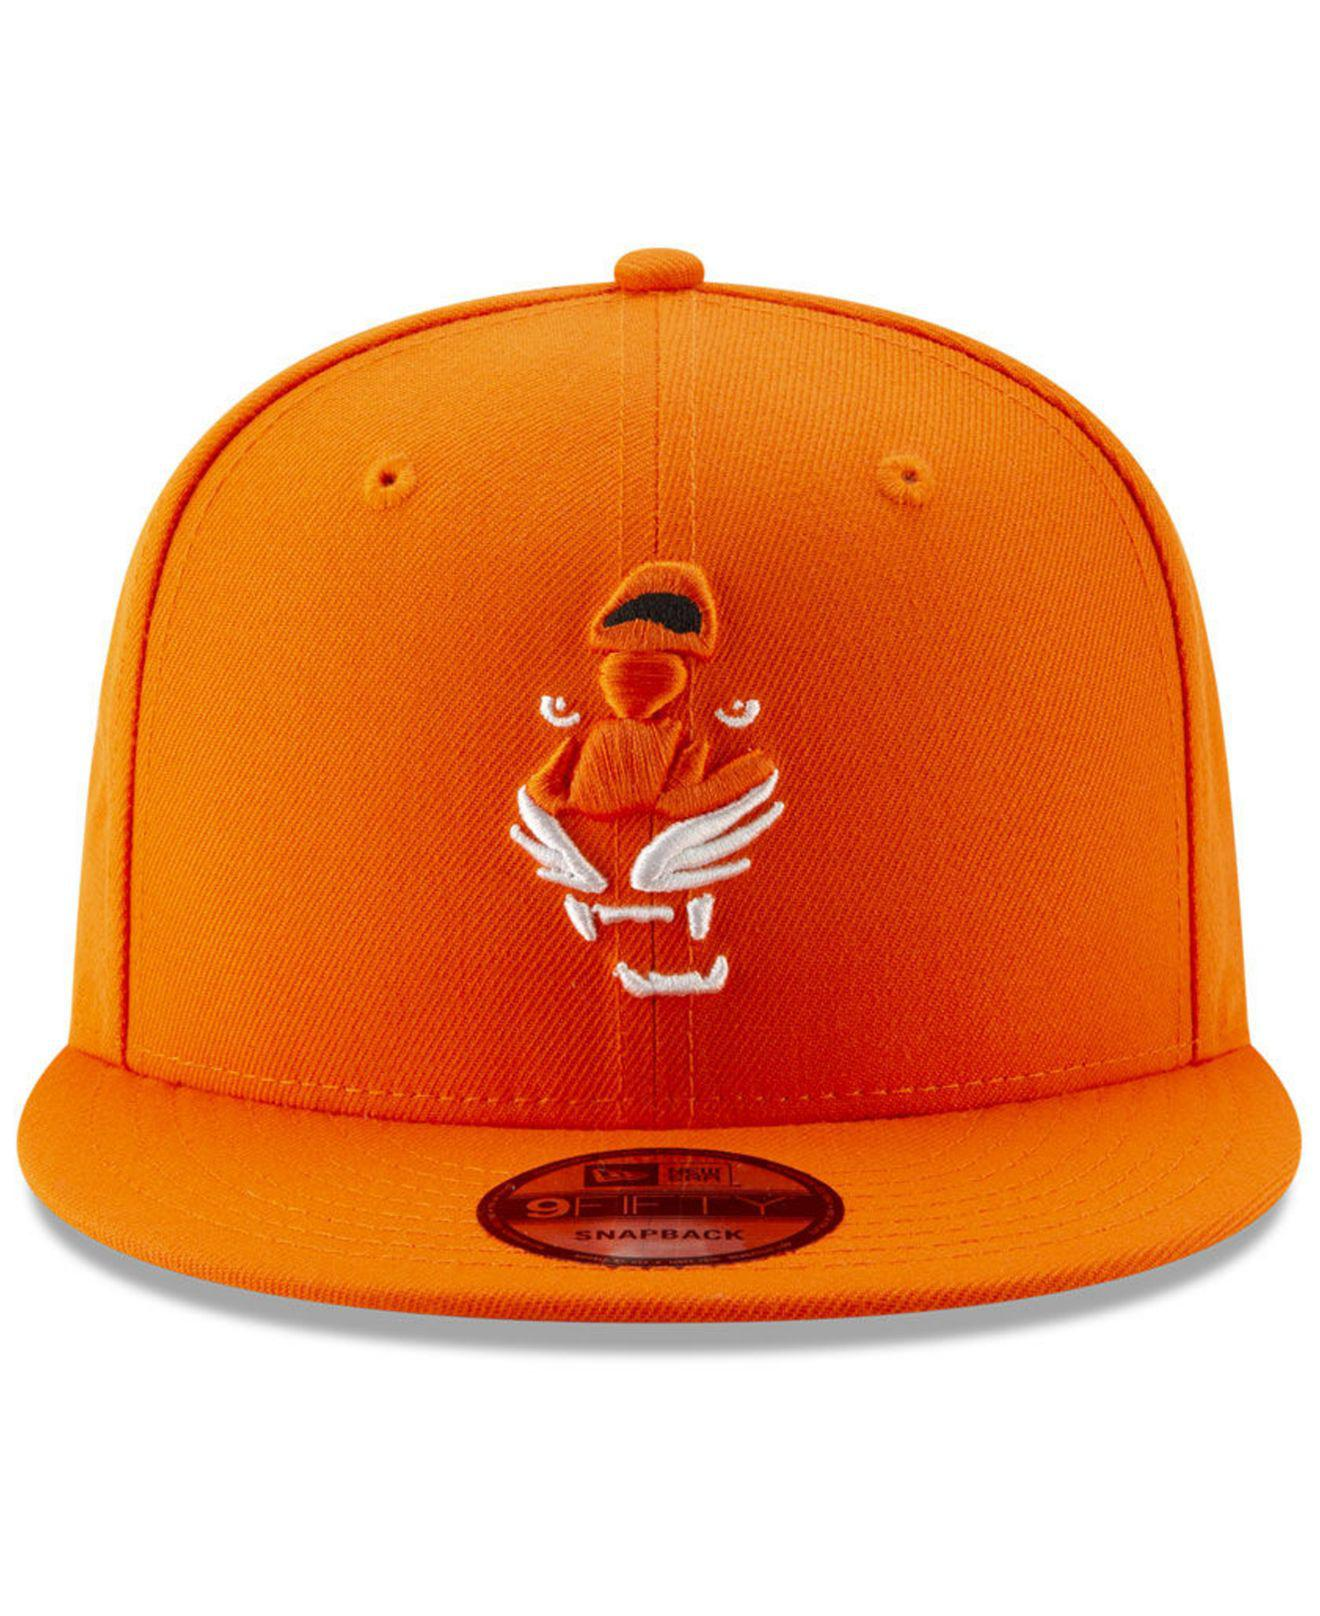 dddb38b2850 Lyst - Ktz Cincinnati Bengals Logo Elements Collection 9fifty Snapback Cap  in Orange for Men